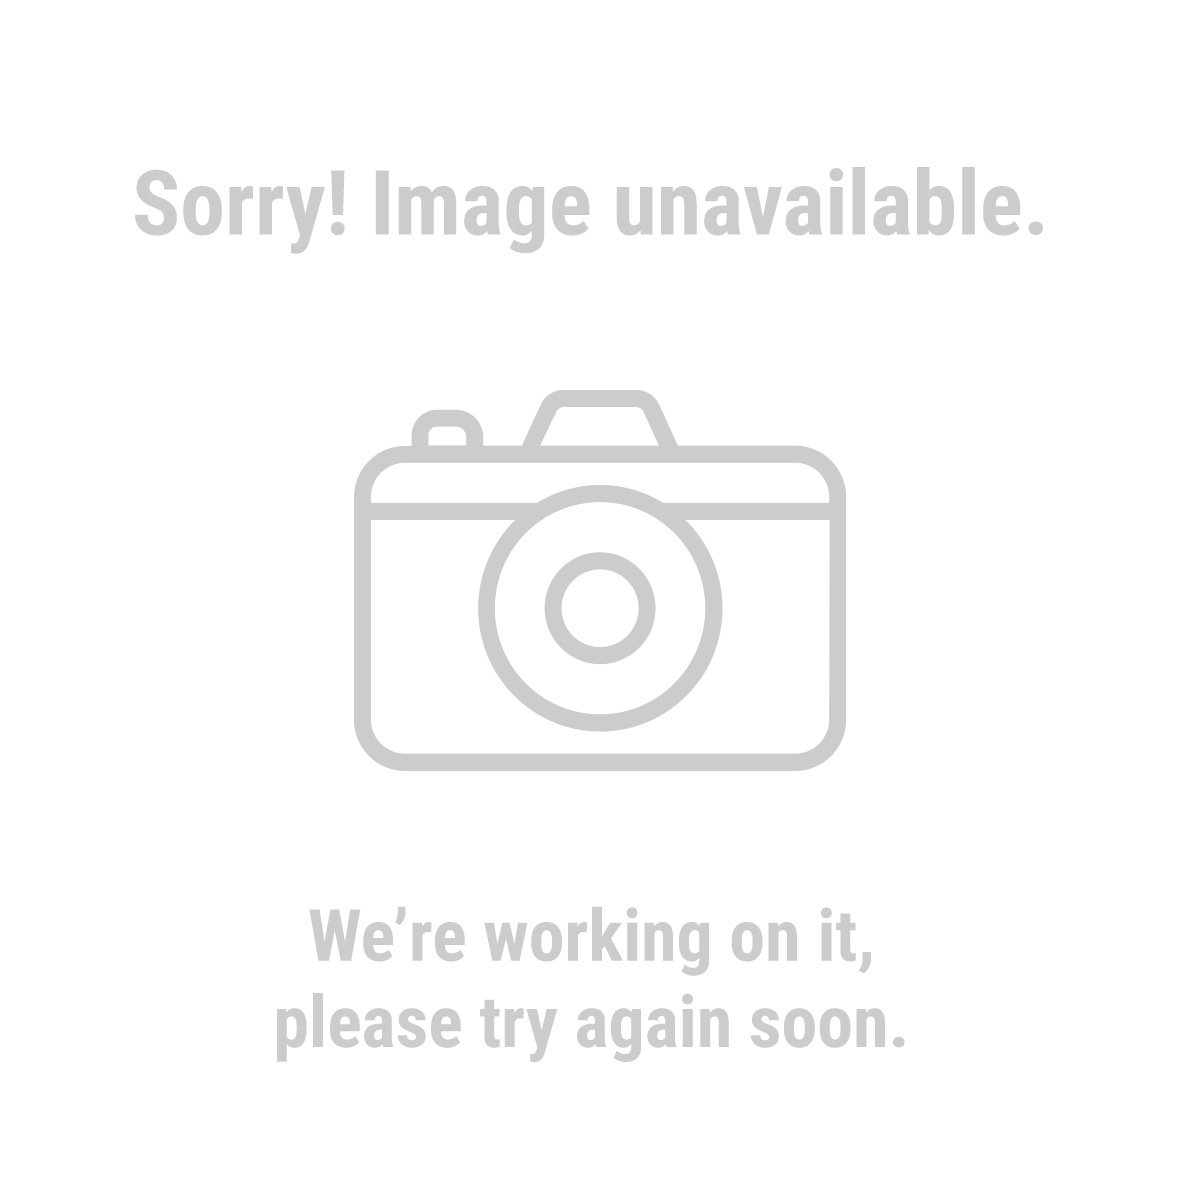 Badland Winches 68144 5000 Lb. Electric ATV/UTV Winch with Automatic Load-Holding Brake